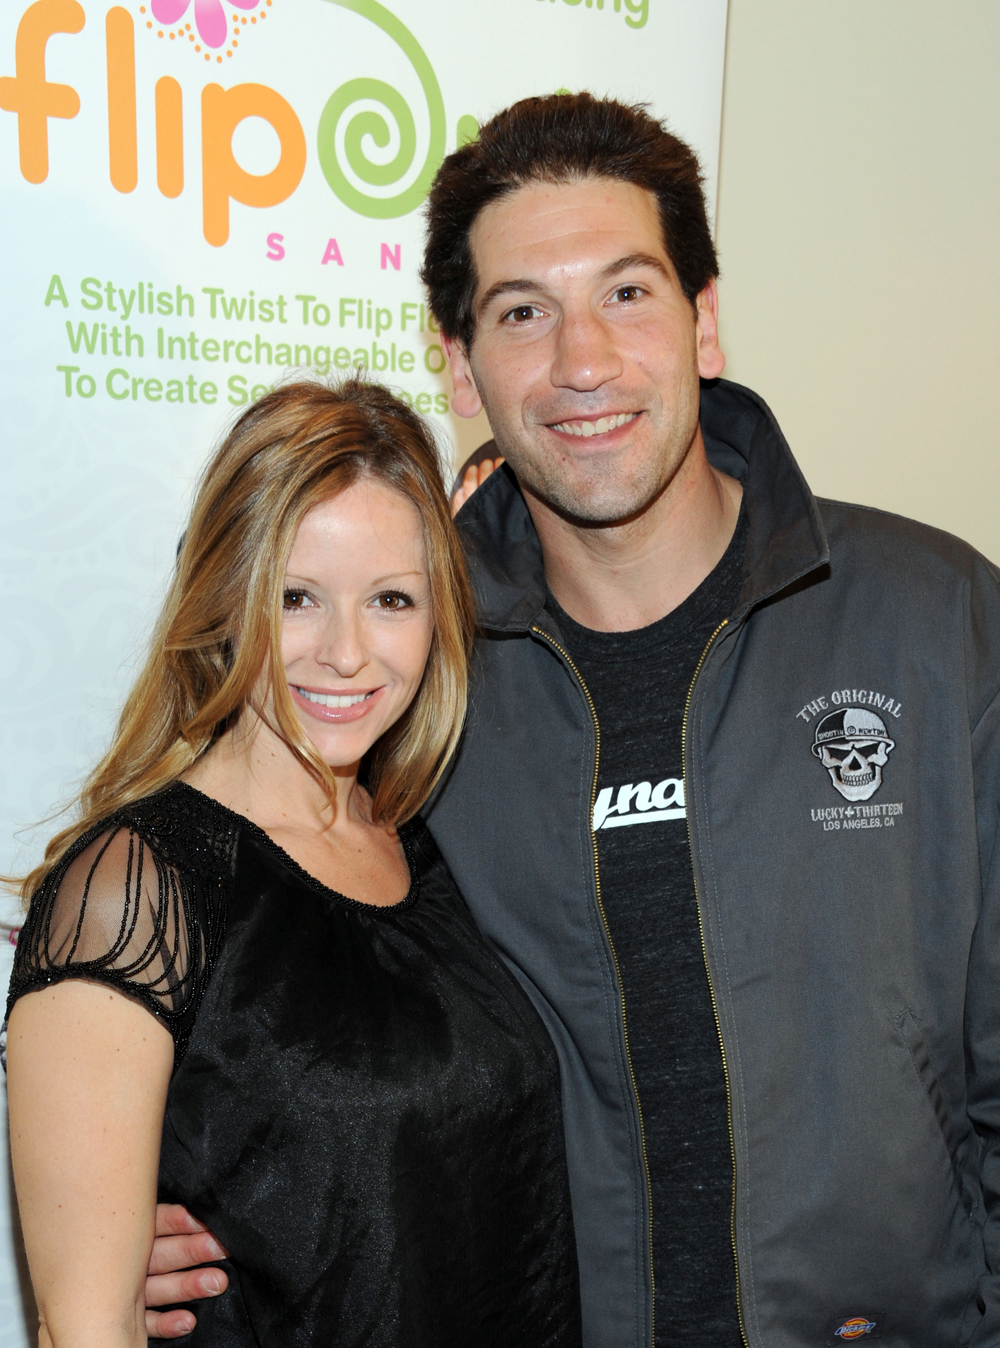 Jon Bernthal holds his wife Erin Angle by her waist as they both smile for a picture.